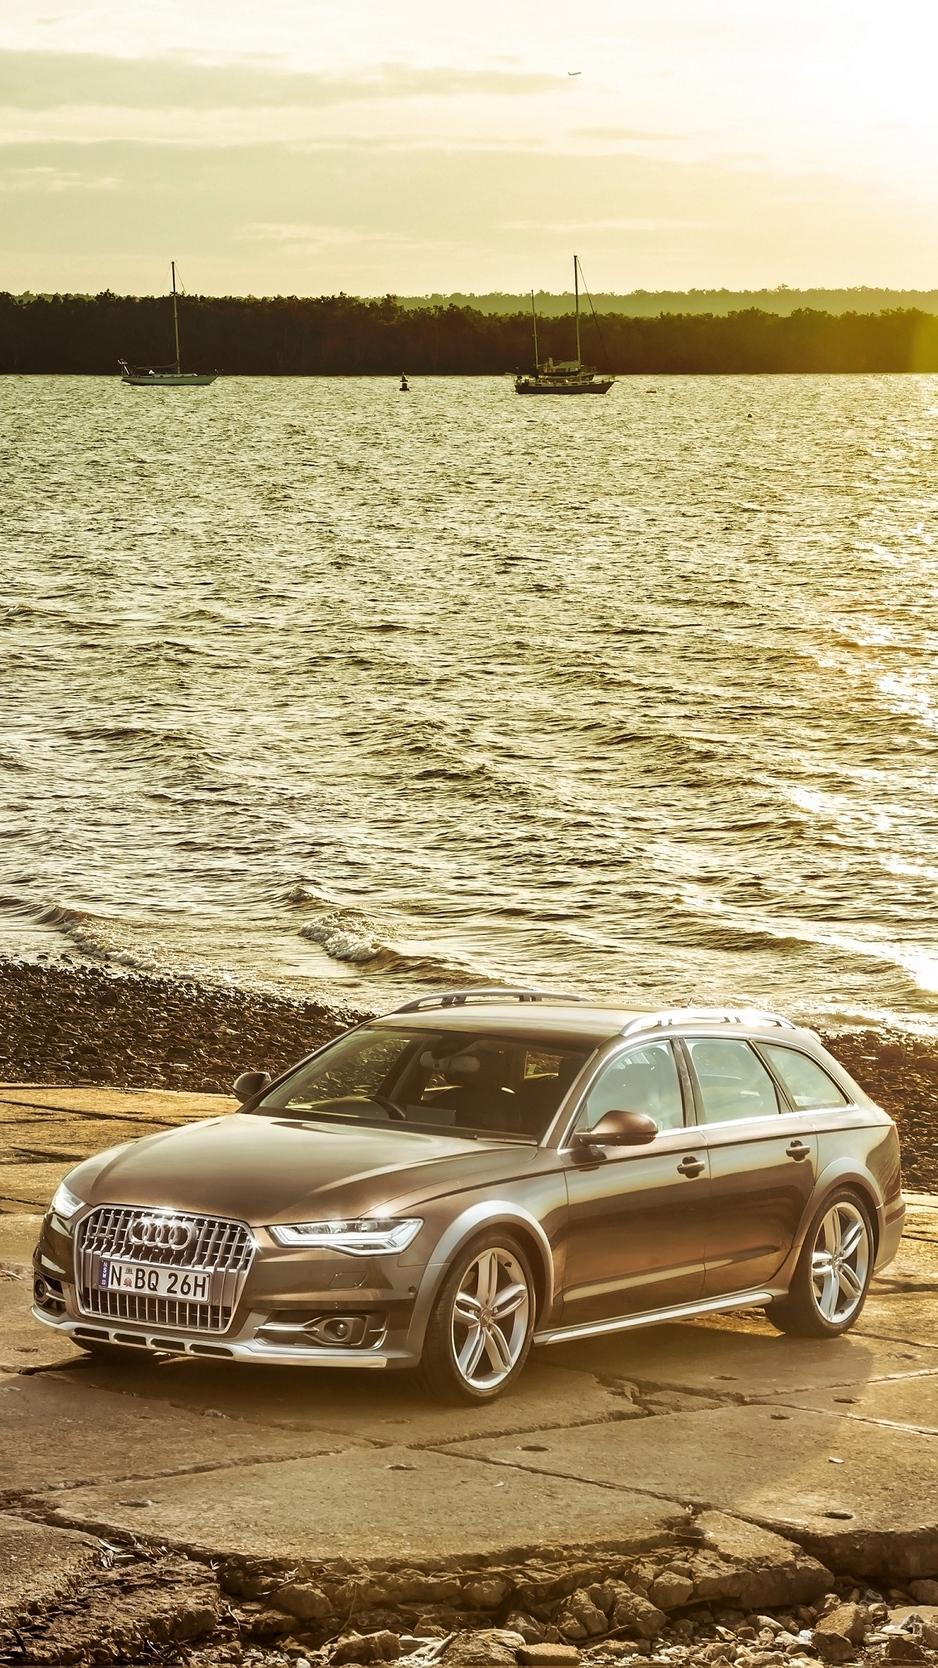 Download wallpapers 938x1668 audi, a6, allroad, side view iphone 8/7